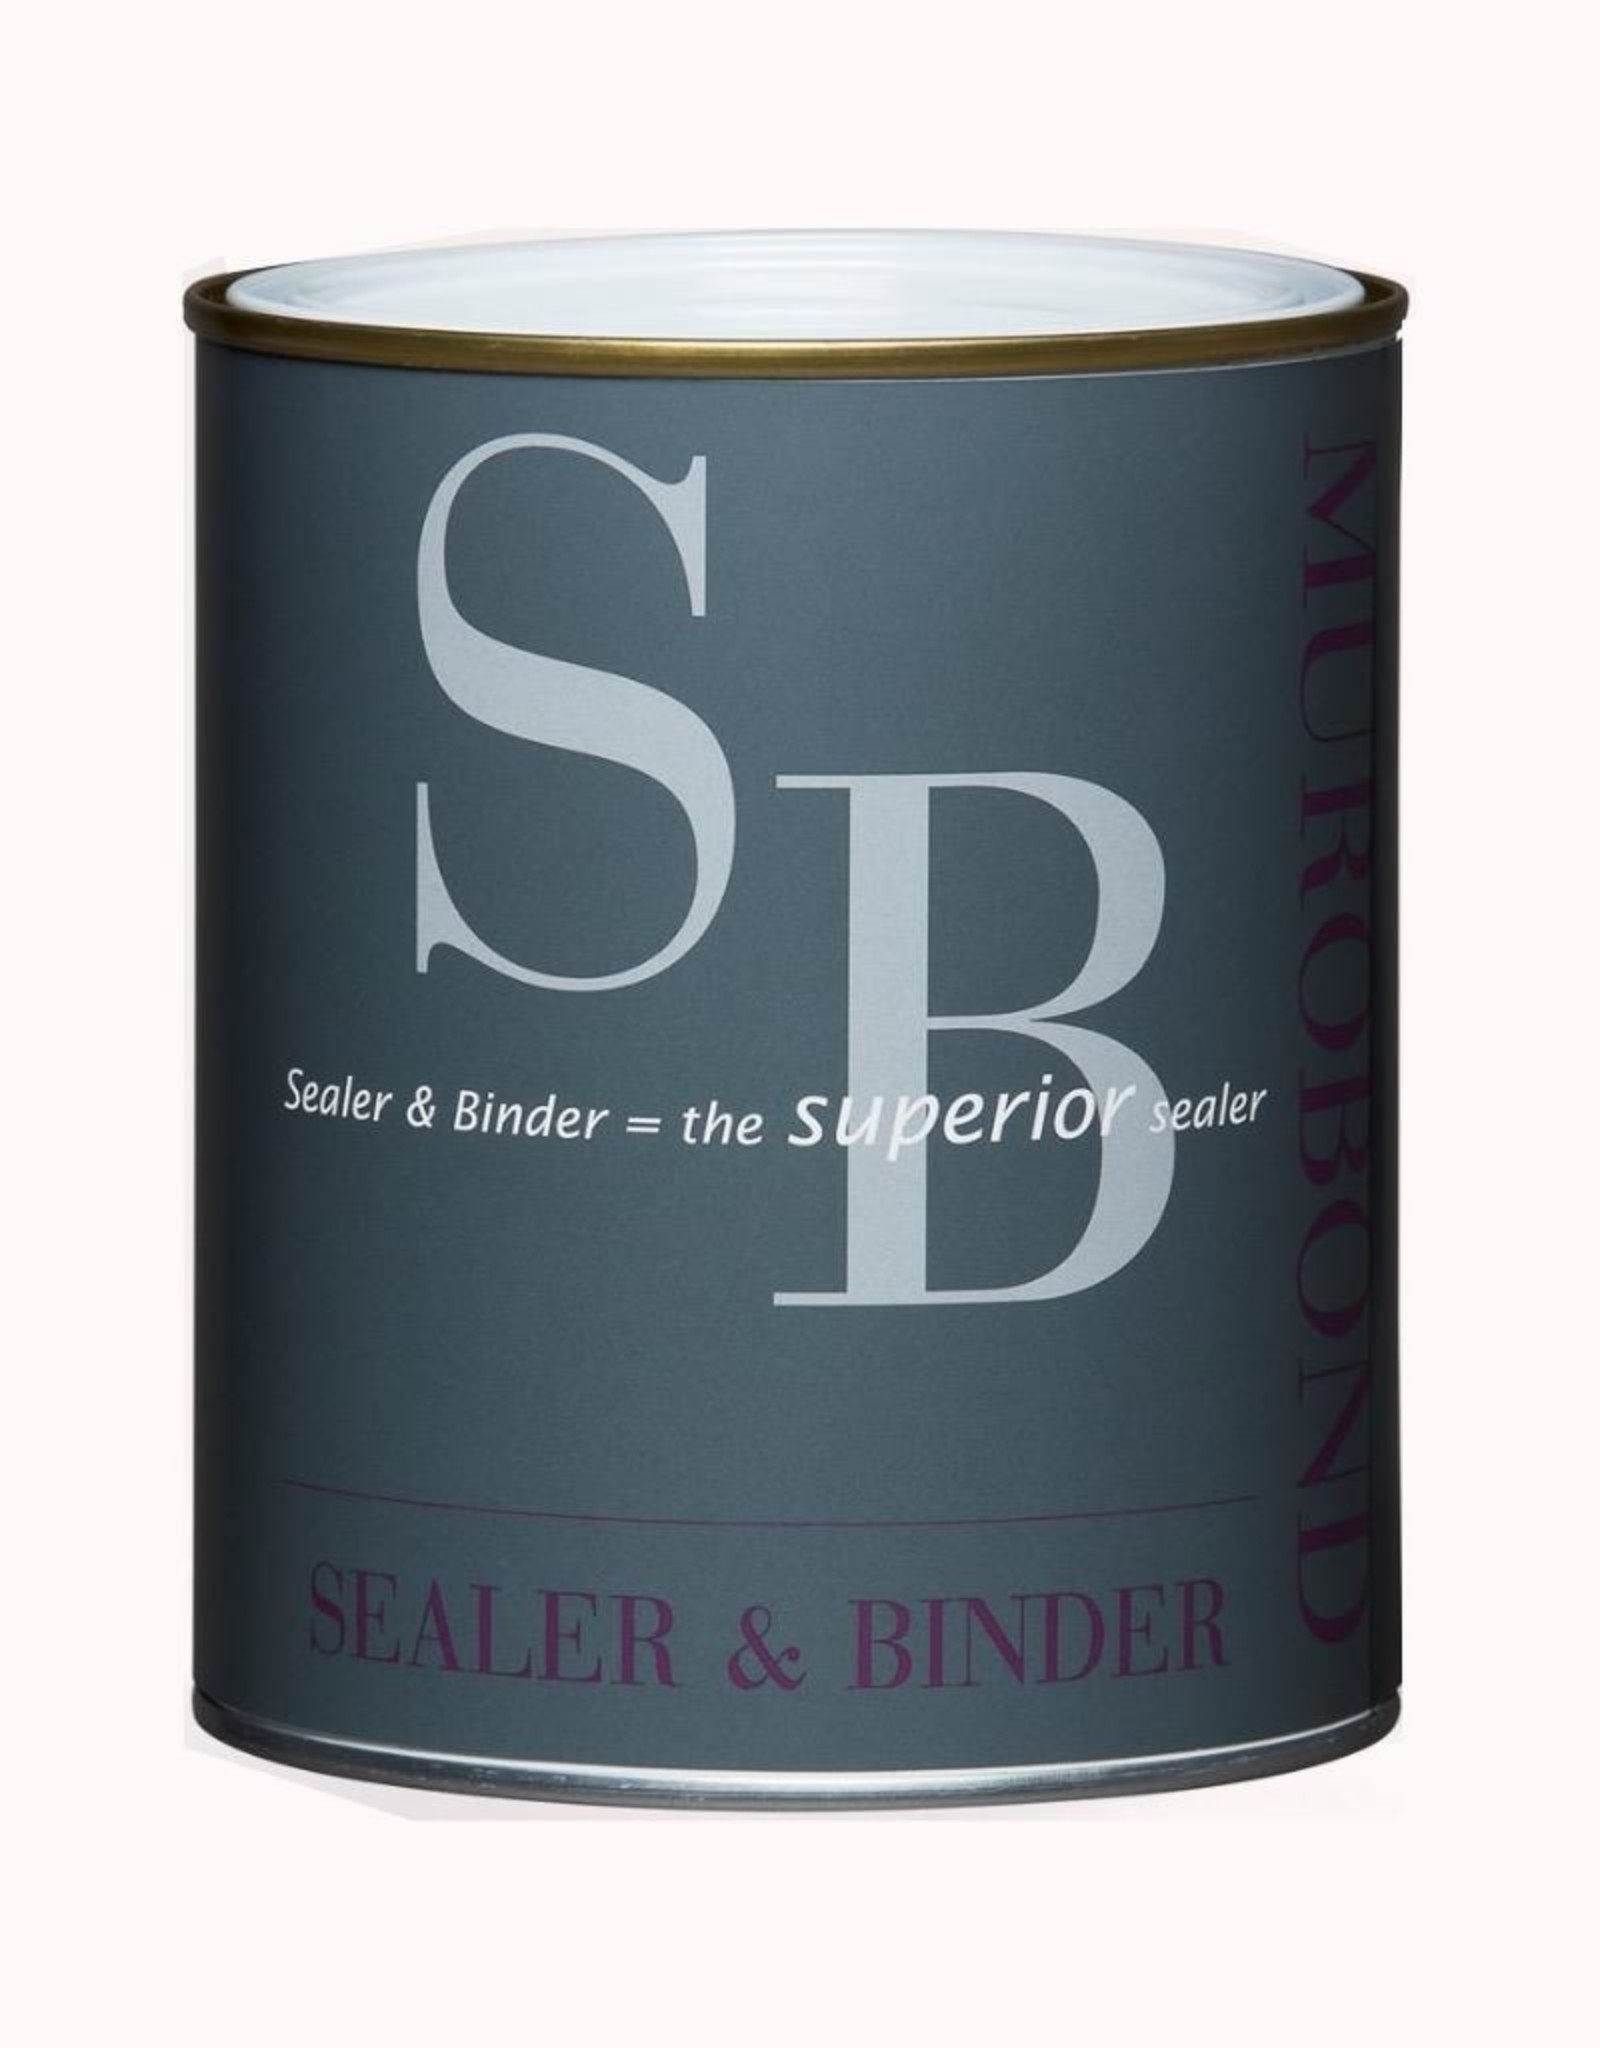 MUROBOND Sealer & Binder